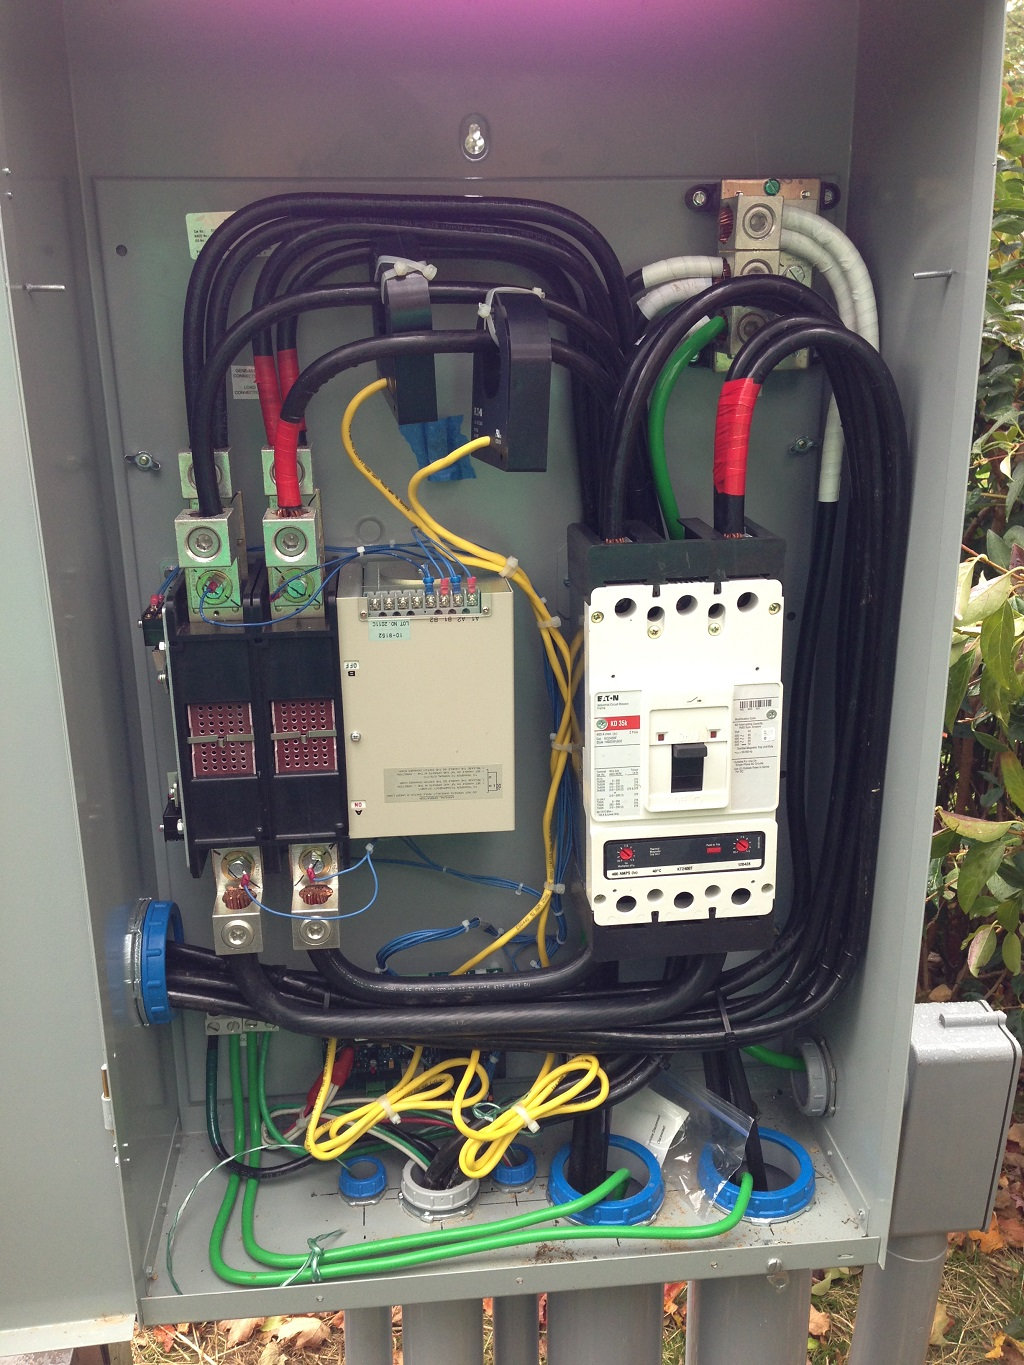 Wiring A Home Standby Generator Data Schema 10kw Diagram Transfer Switch Installs Central Nj Westfield Union Cost To Install Electrical